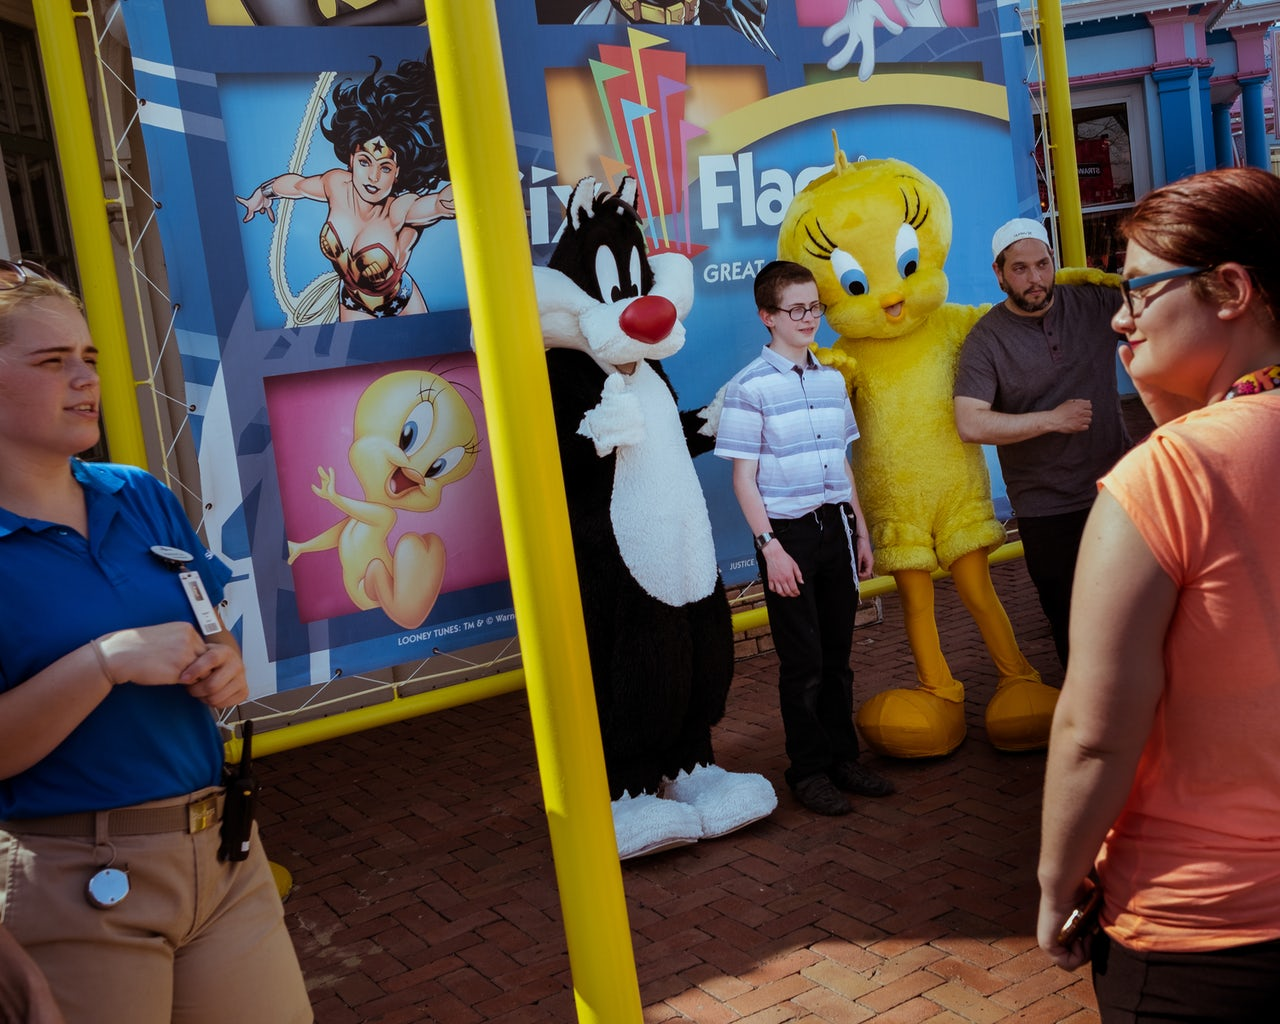 A glimpse inside Autism Day at Six Flags | The Outline